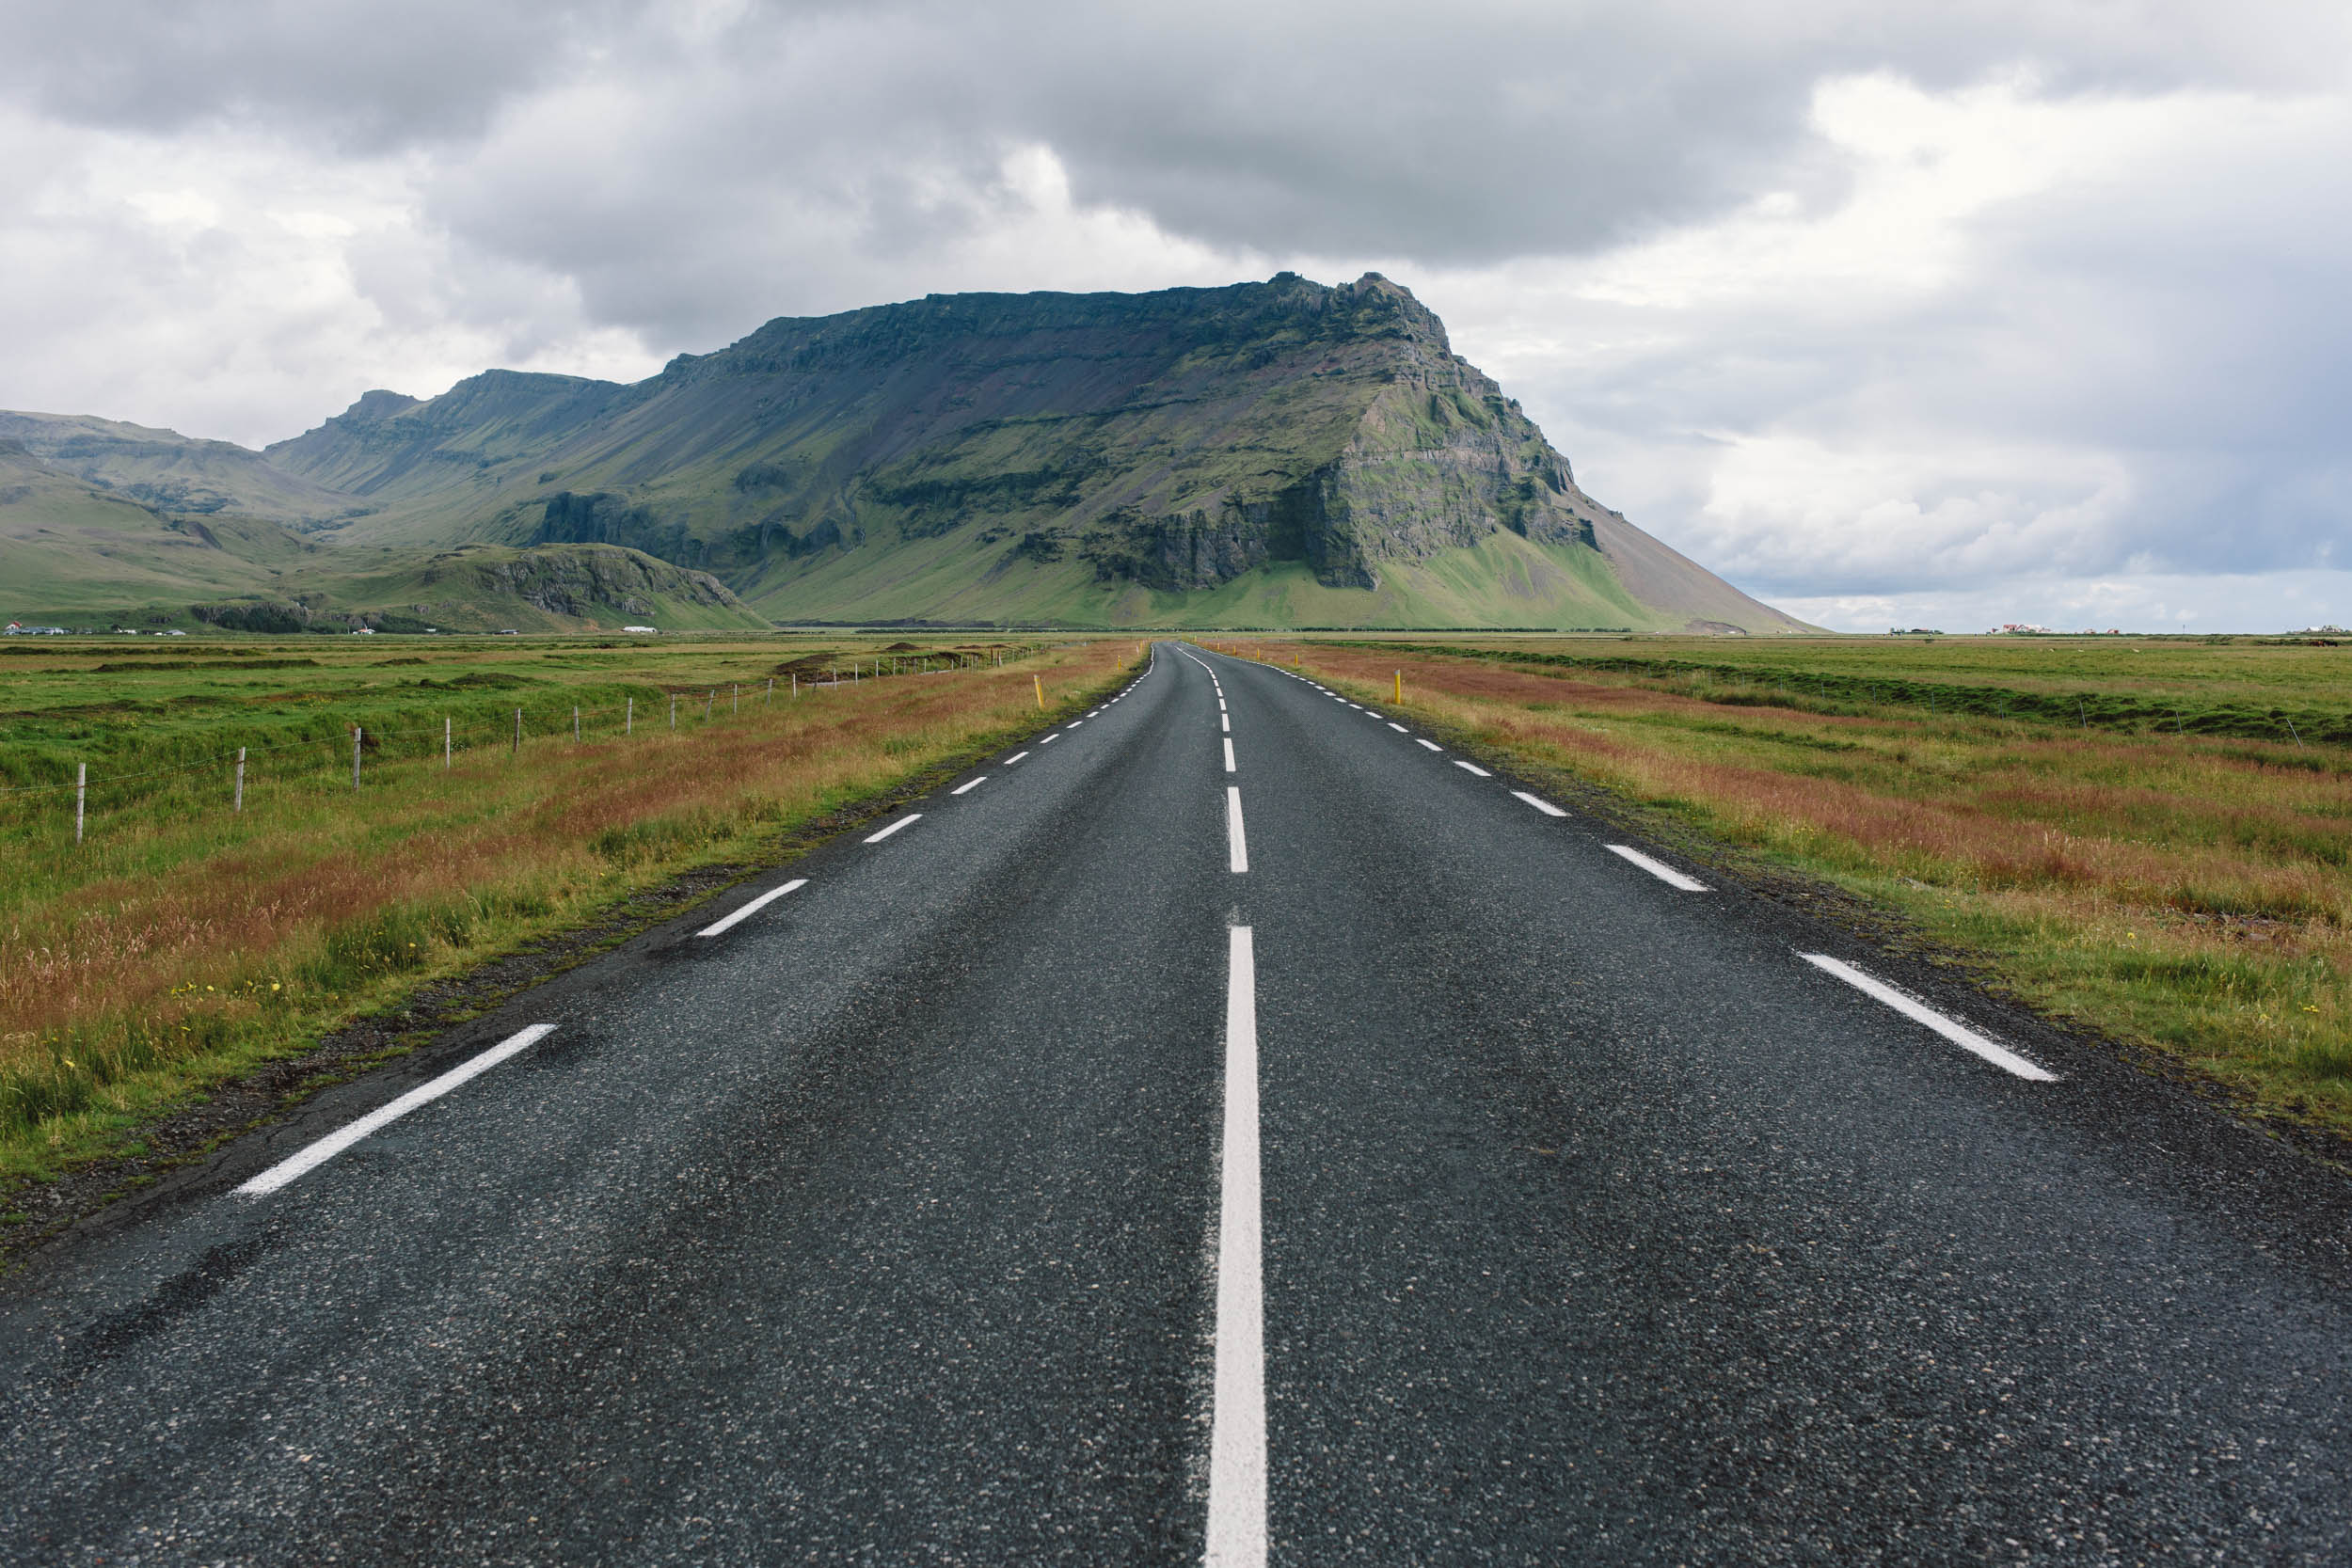 iceland-travel-camping-ring-road-002.jpg